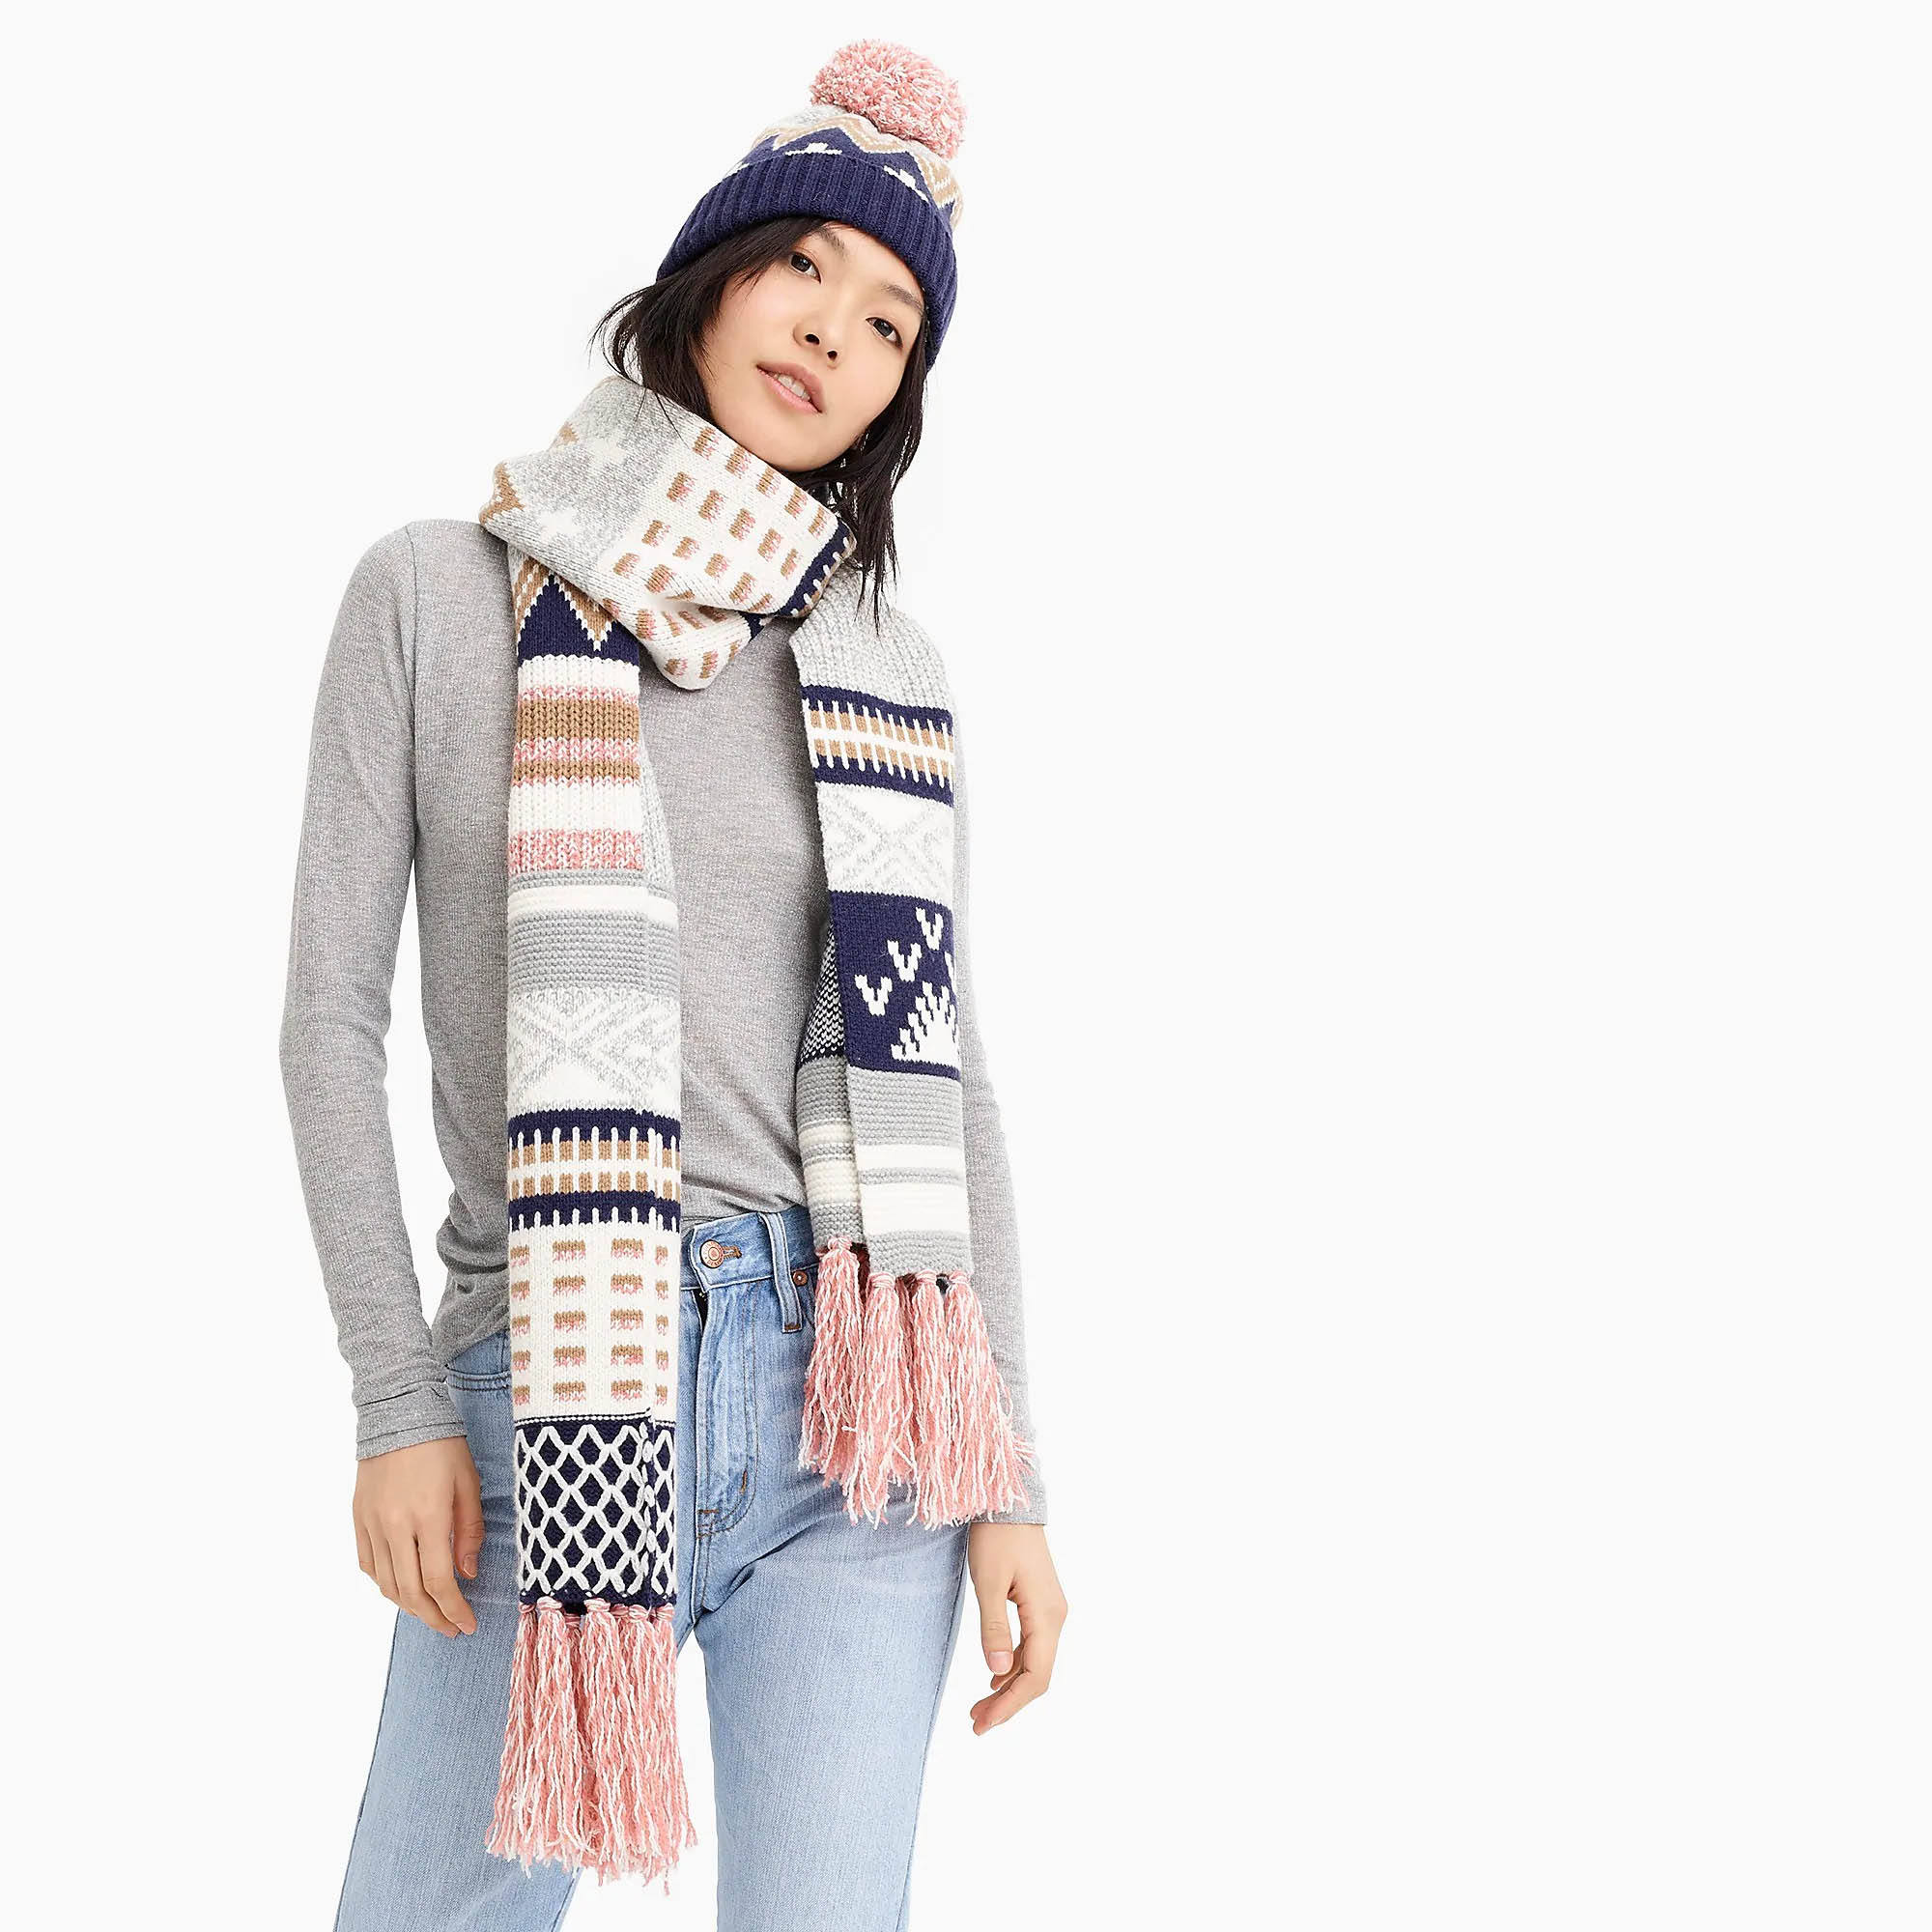 WOMEN'S 60/40 merino wool/nylon KNITTED JACQUARD HAT SCARF SETS